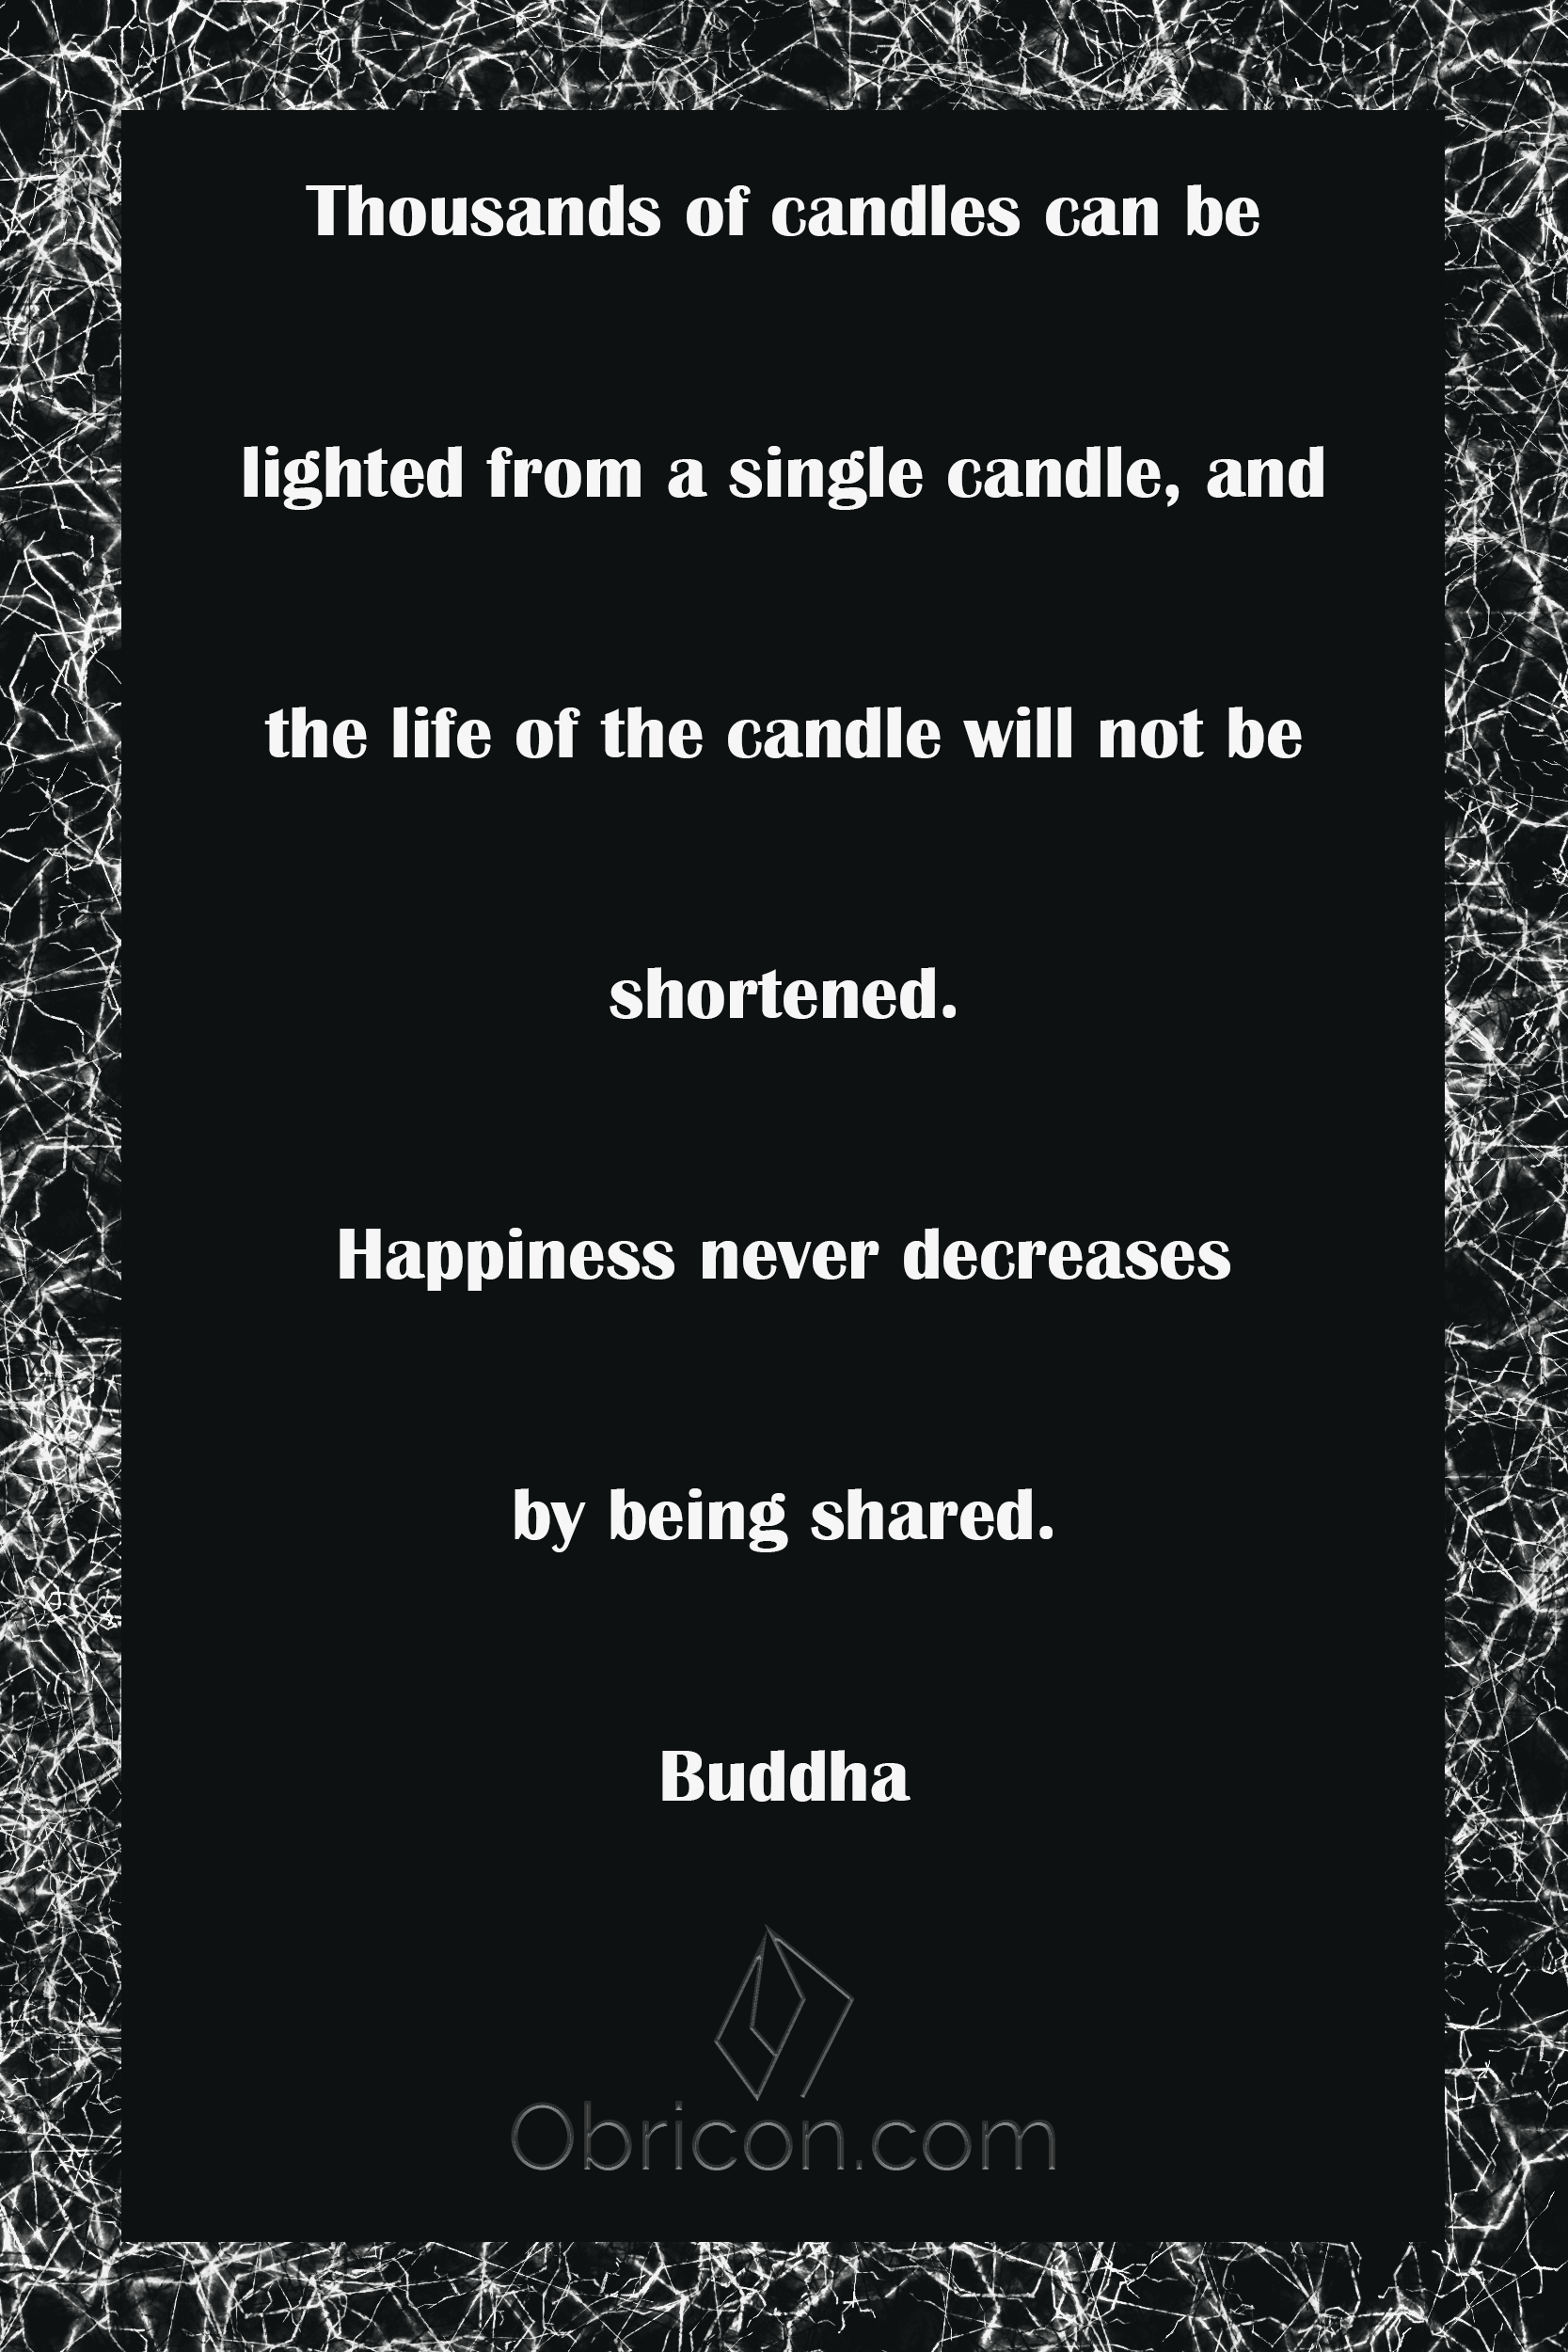 Thousands of candles can be lighted from a single candle, and the life of the candle will not be shortened. Happiness never decreases by being shared. Buddha.png